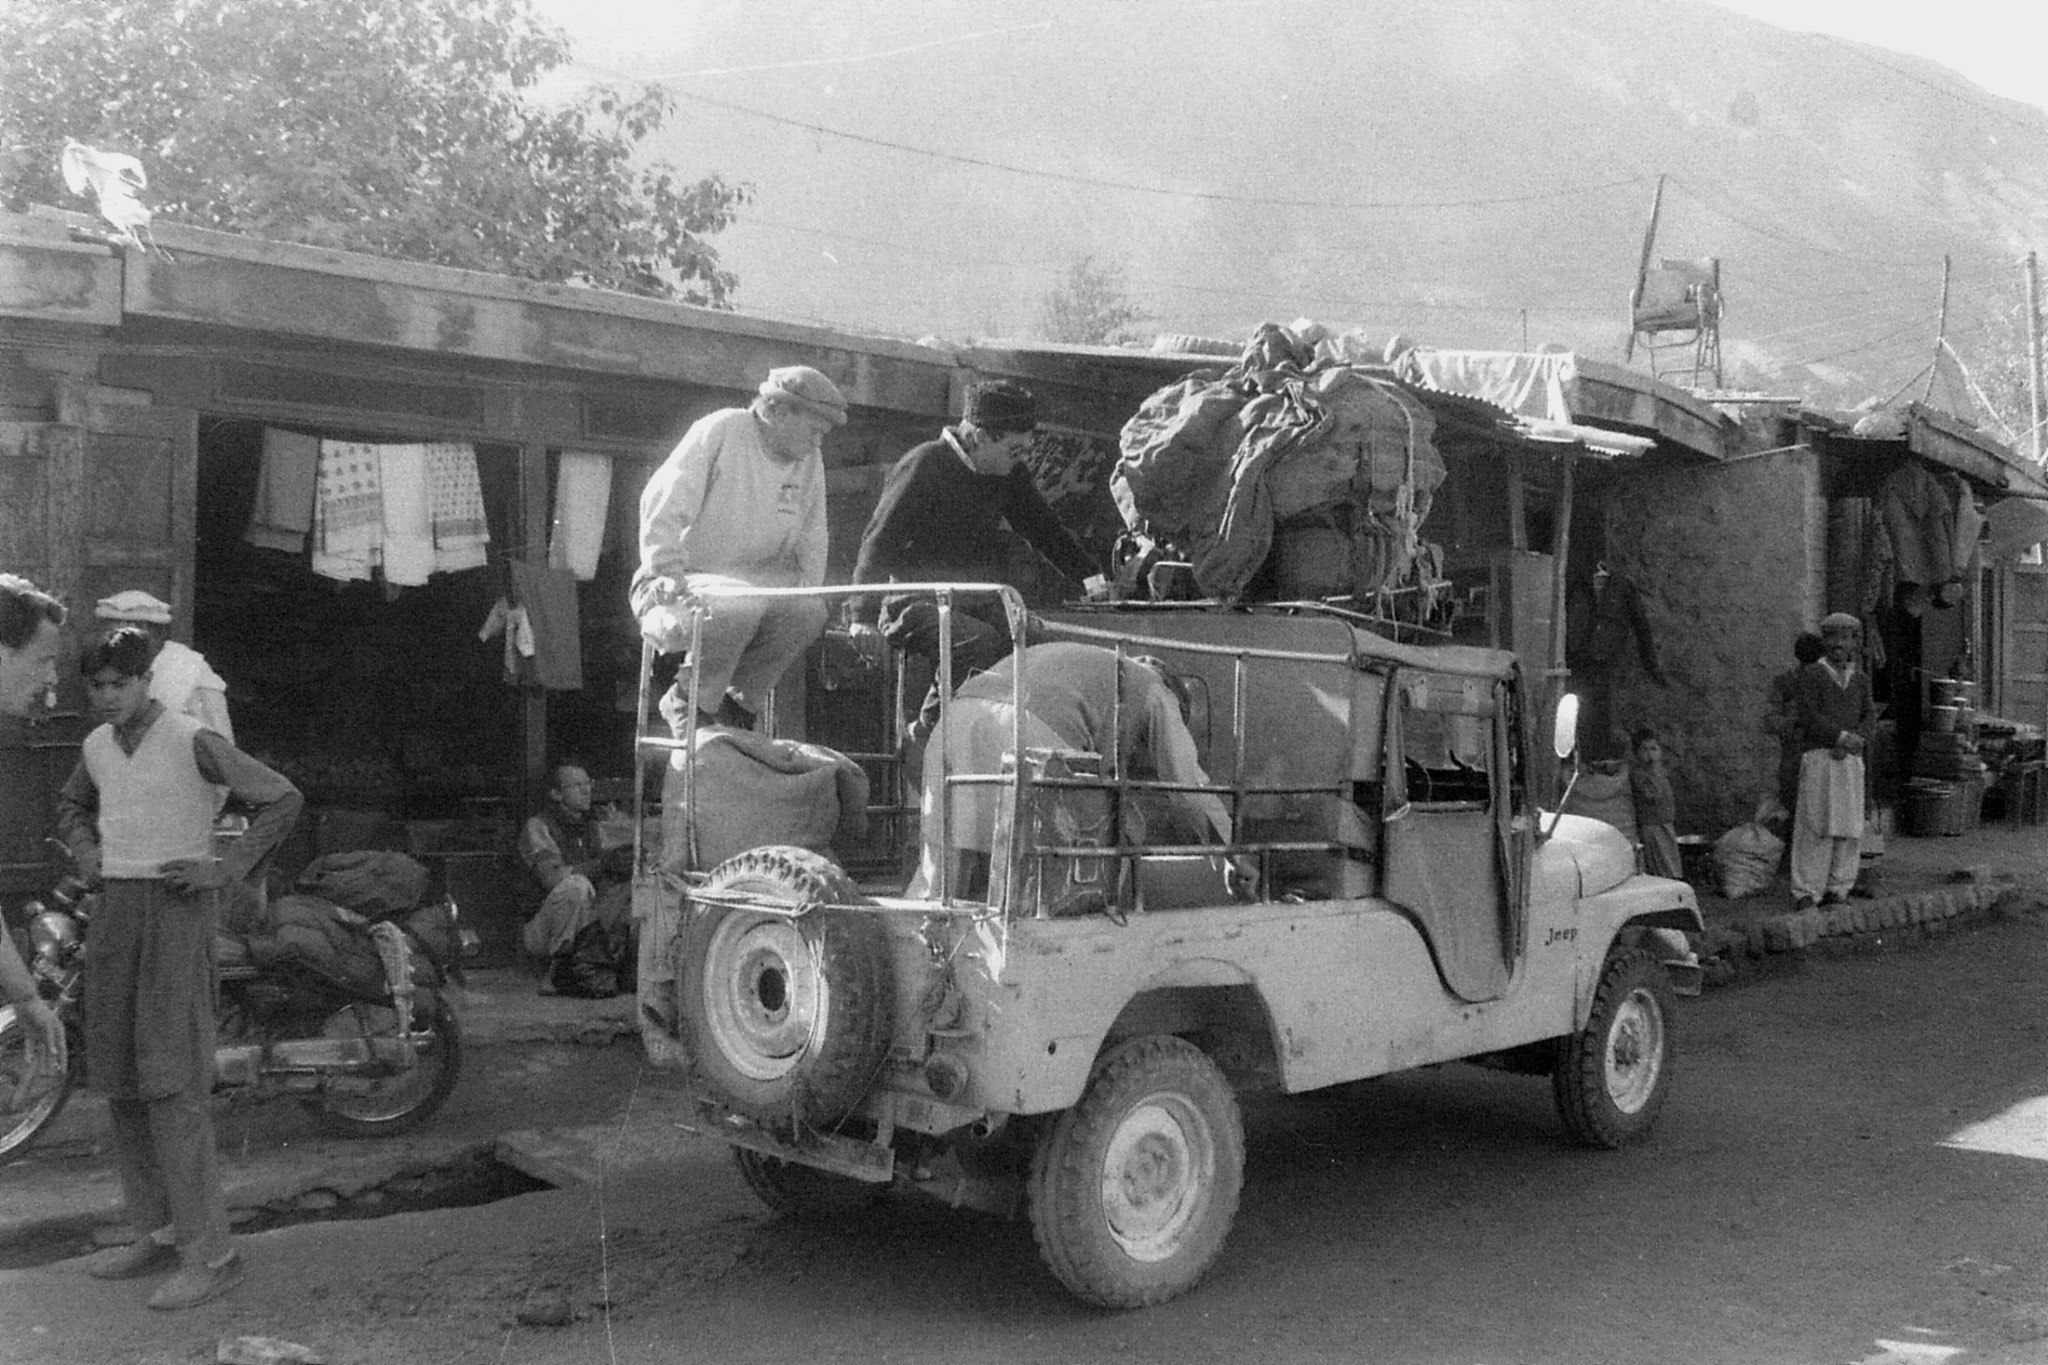 25/10/1989: 11: Gilgit, loading cargo jeep